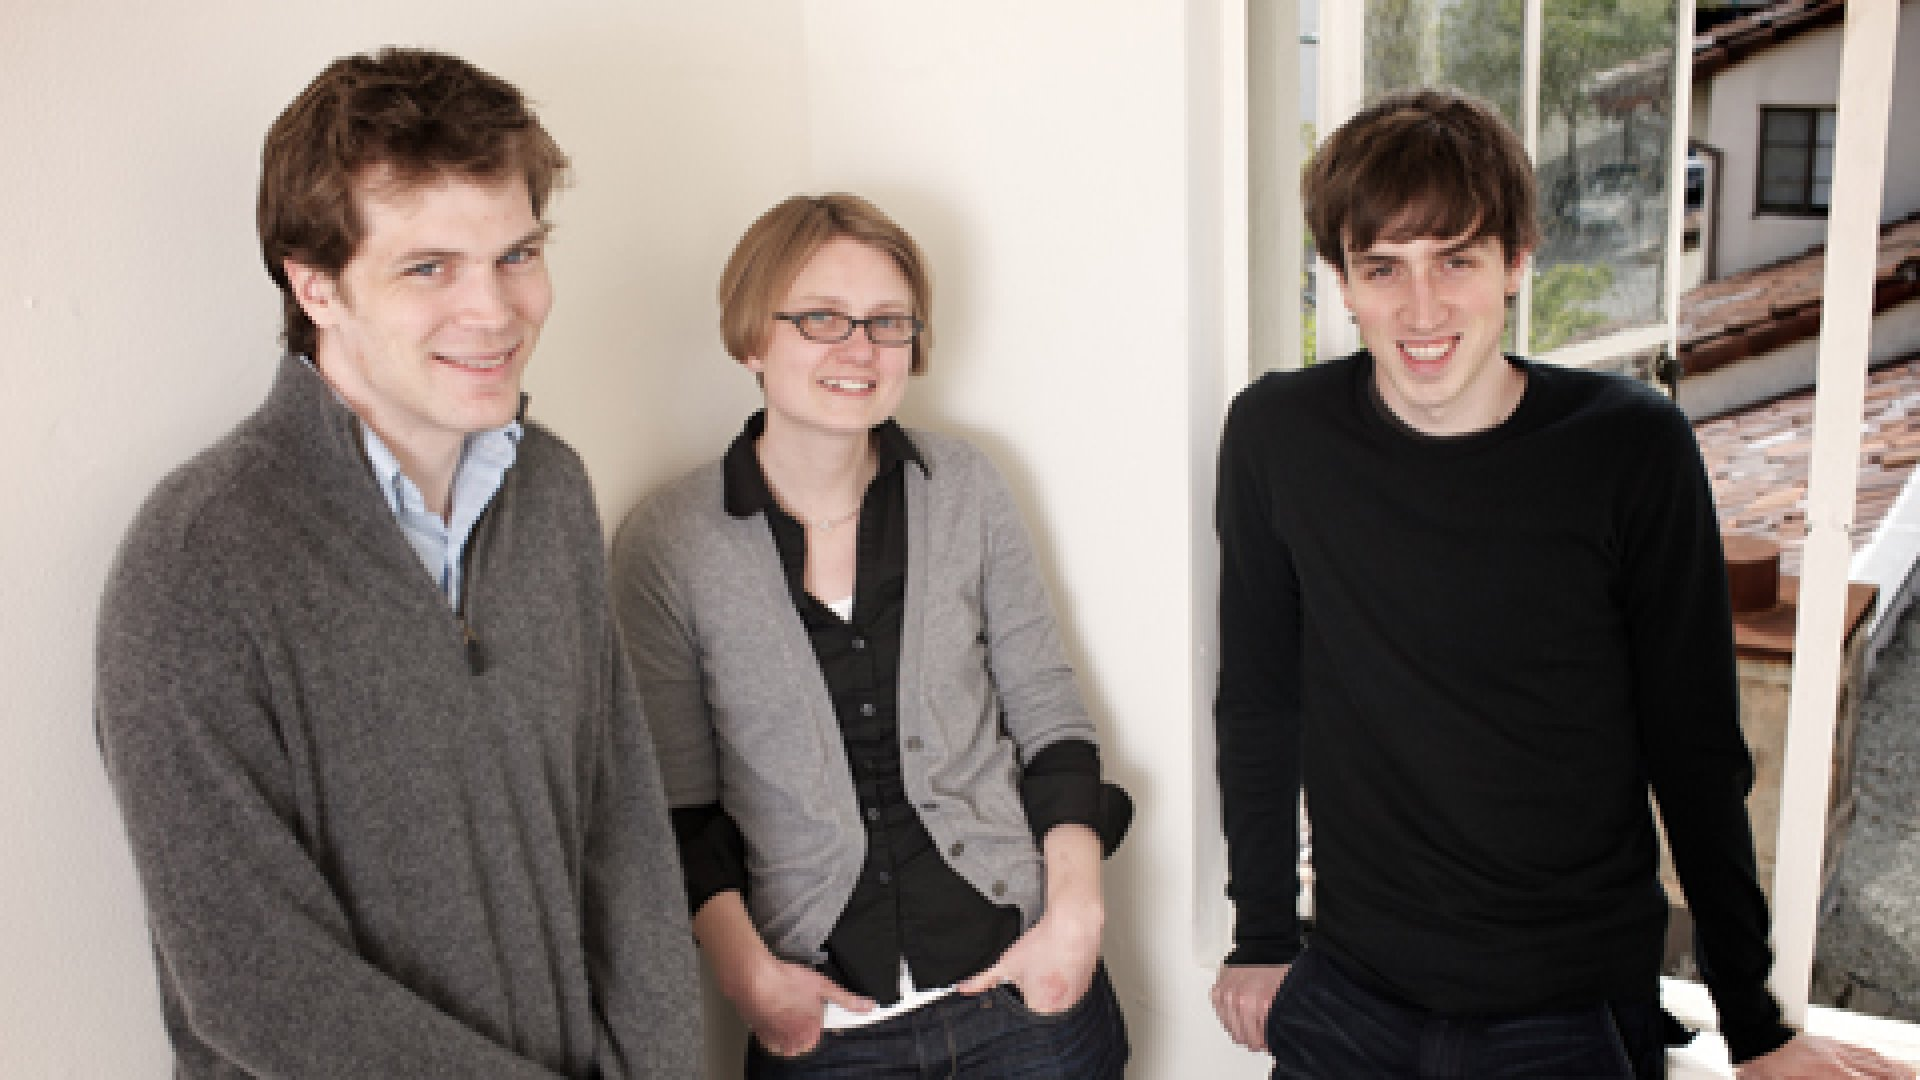 Quora leadership team, from left: Charlie Cheever, Rebekah Cox, and Adam D'Angelo.